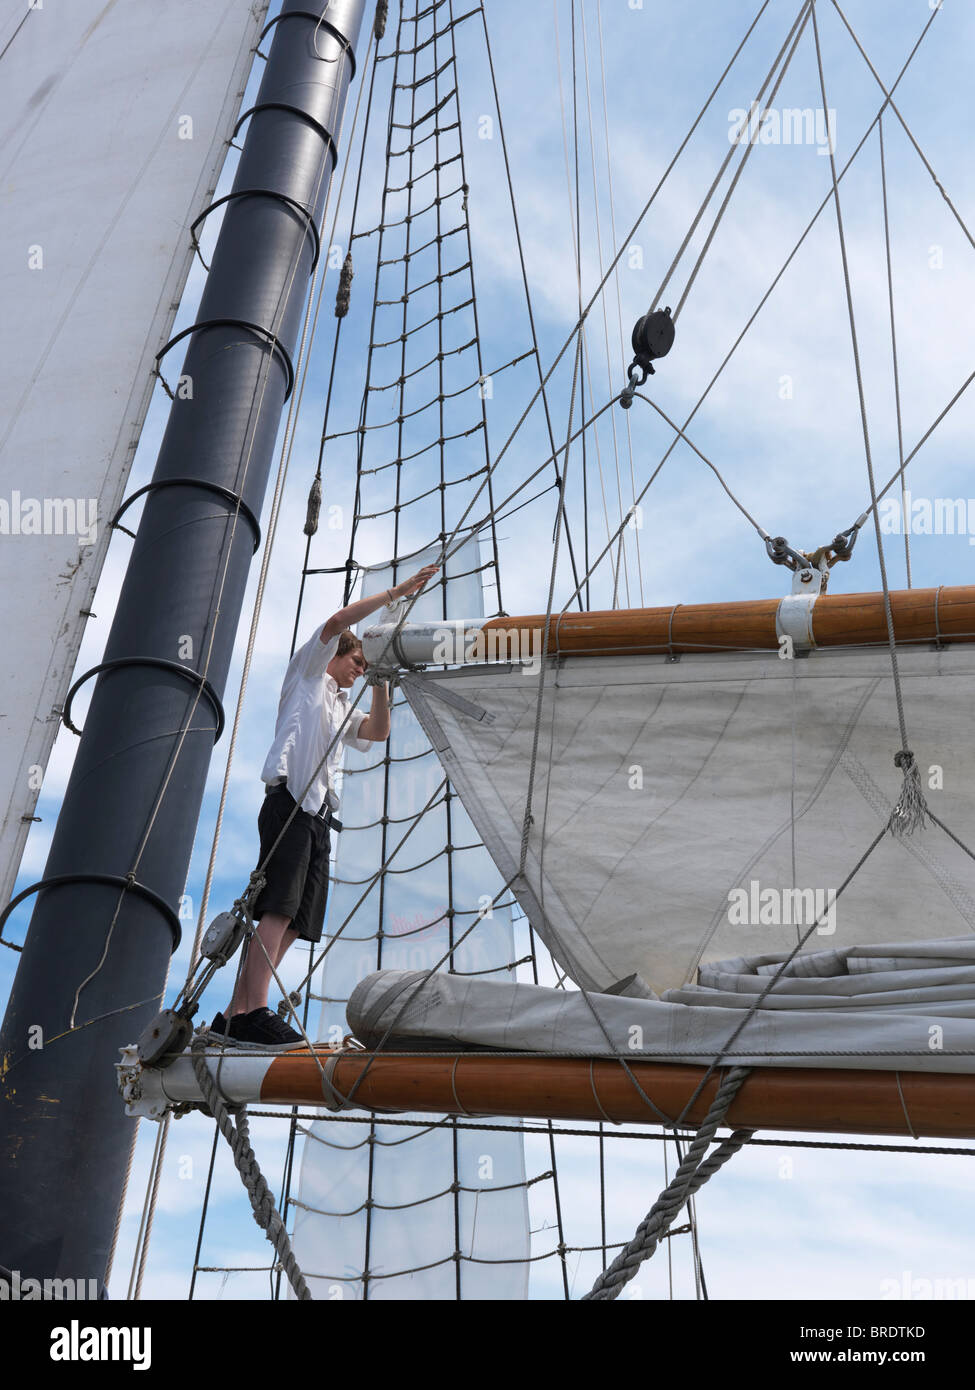 Sailor on a tall ship folding a sail - Stock Image